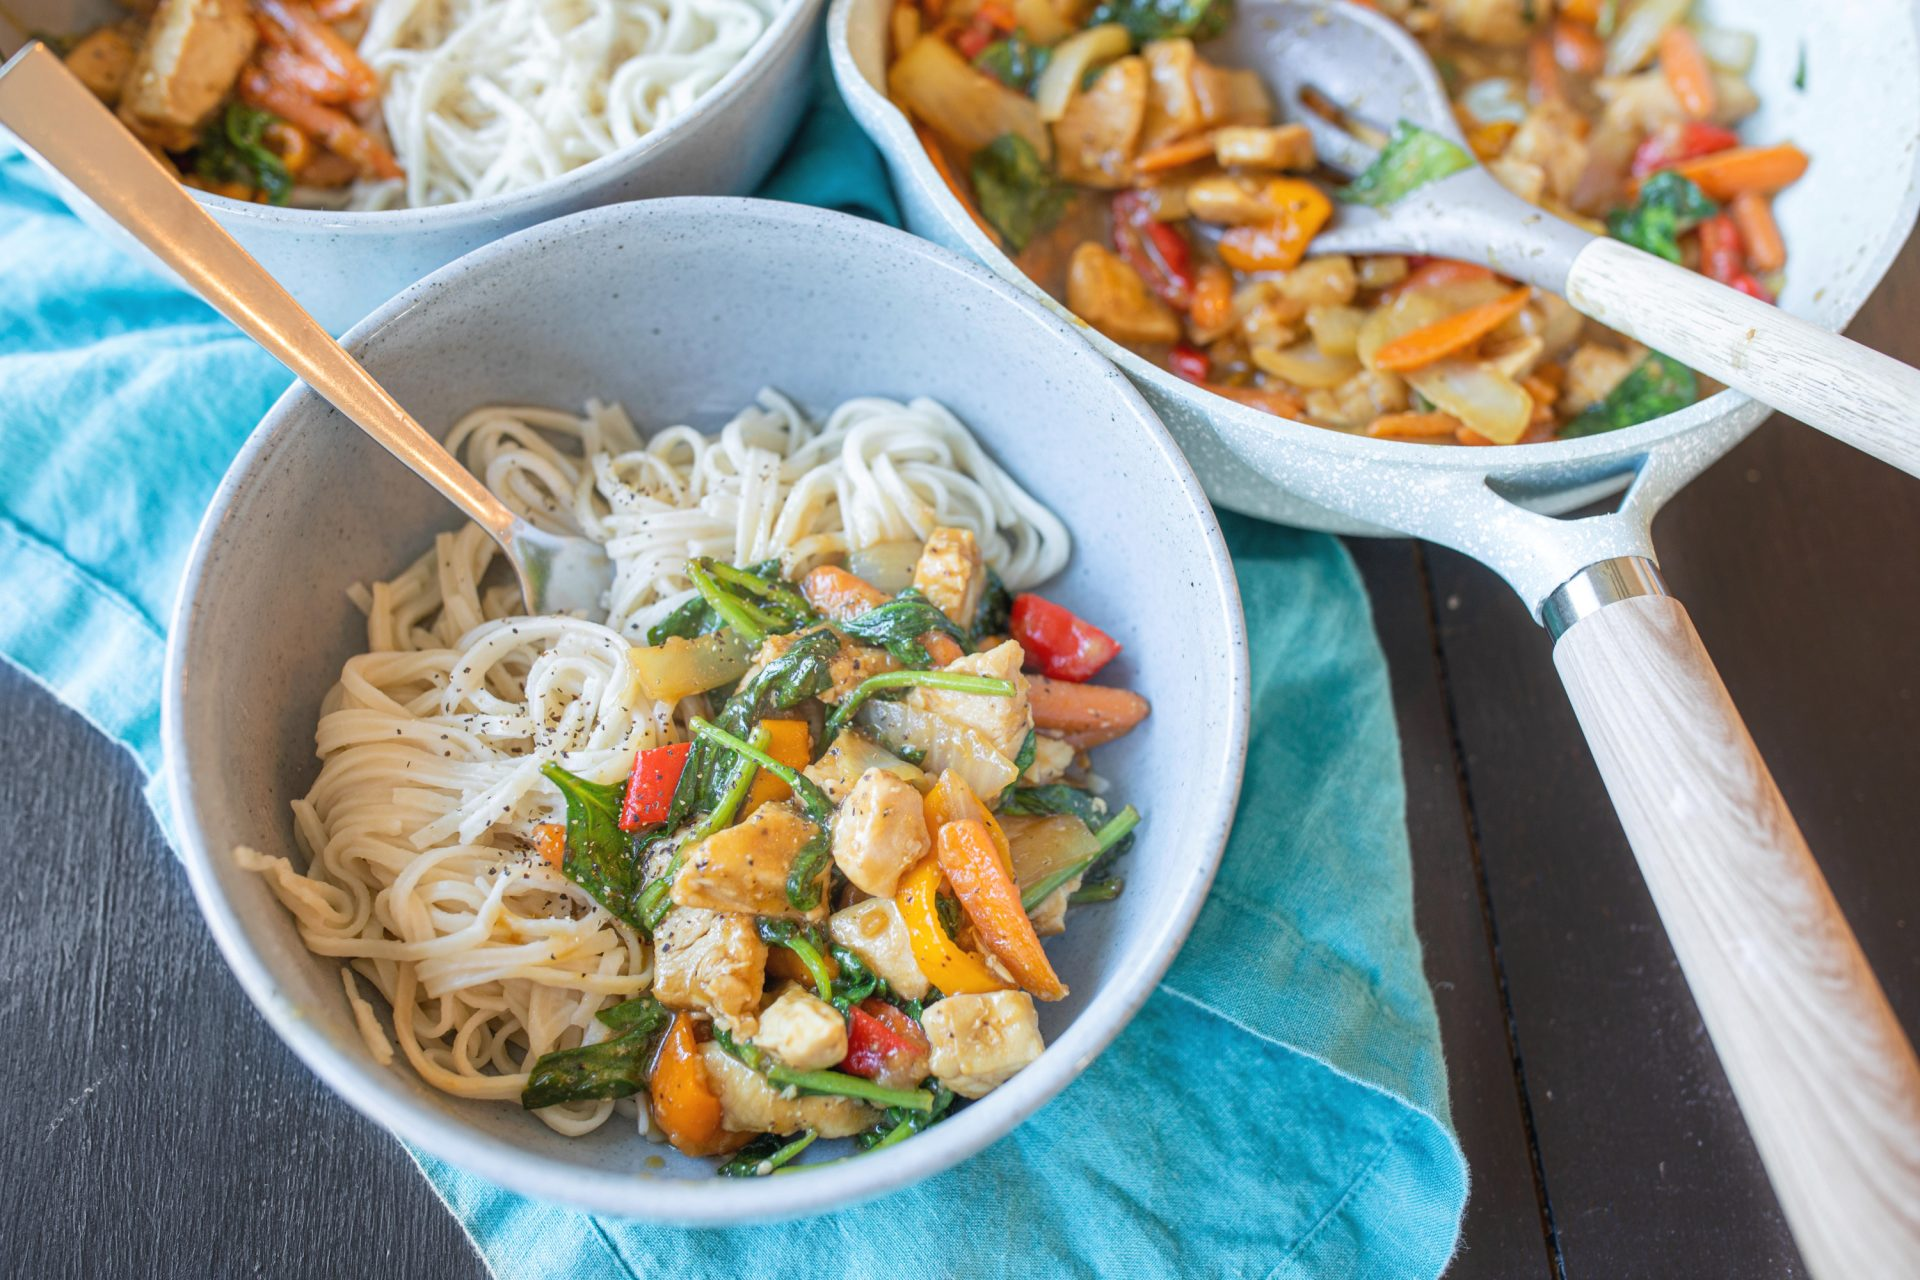 Chicken and vegetable stir fry, gluten free, dairy free, dinner, recipe, low carb, rice noodles, cooking foodChicken and vegetable stir fry, gluten free, dairy free, dinner, recipe, low carb, rice noodles, cooking food